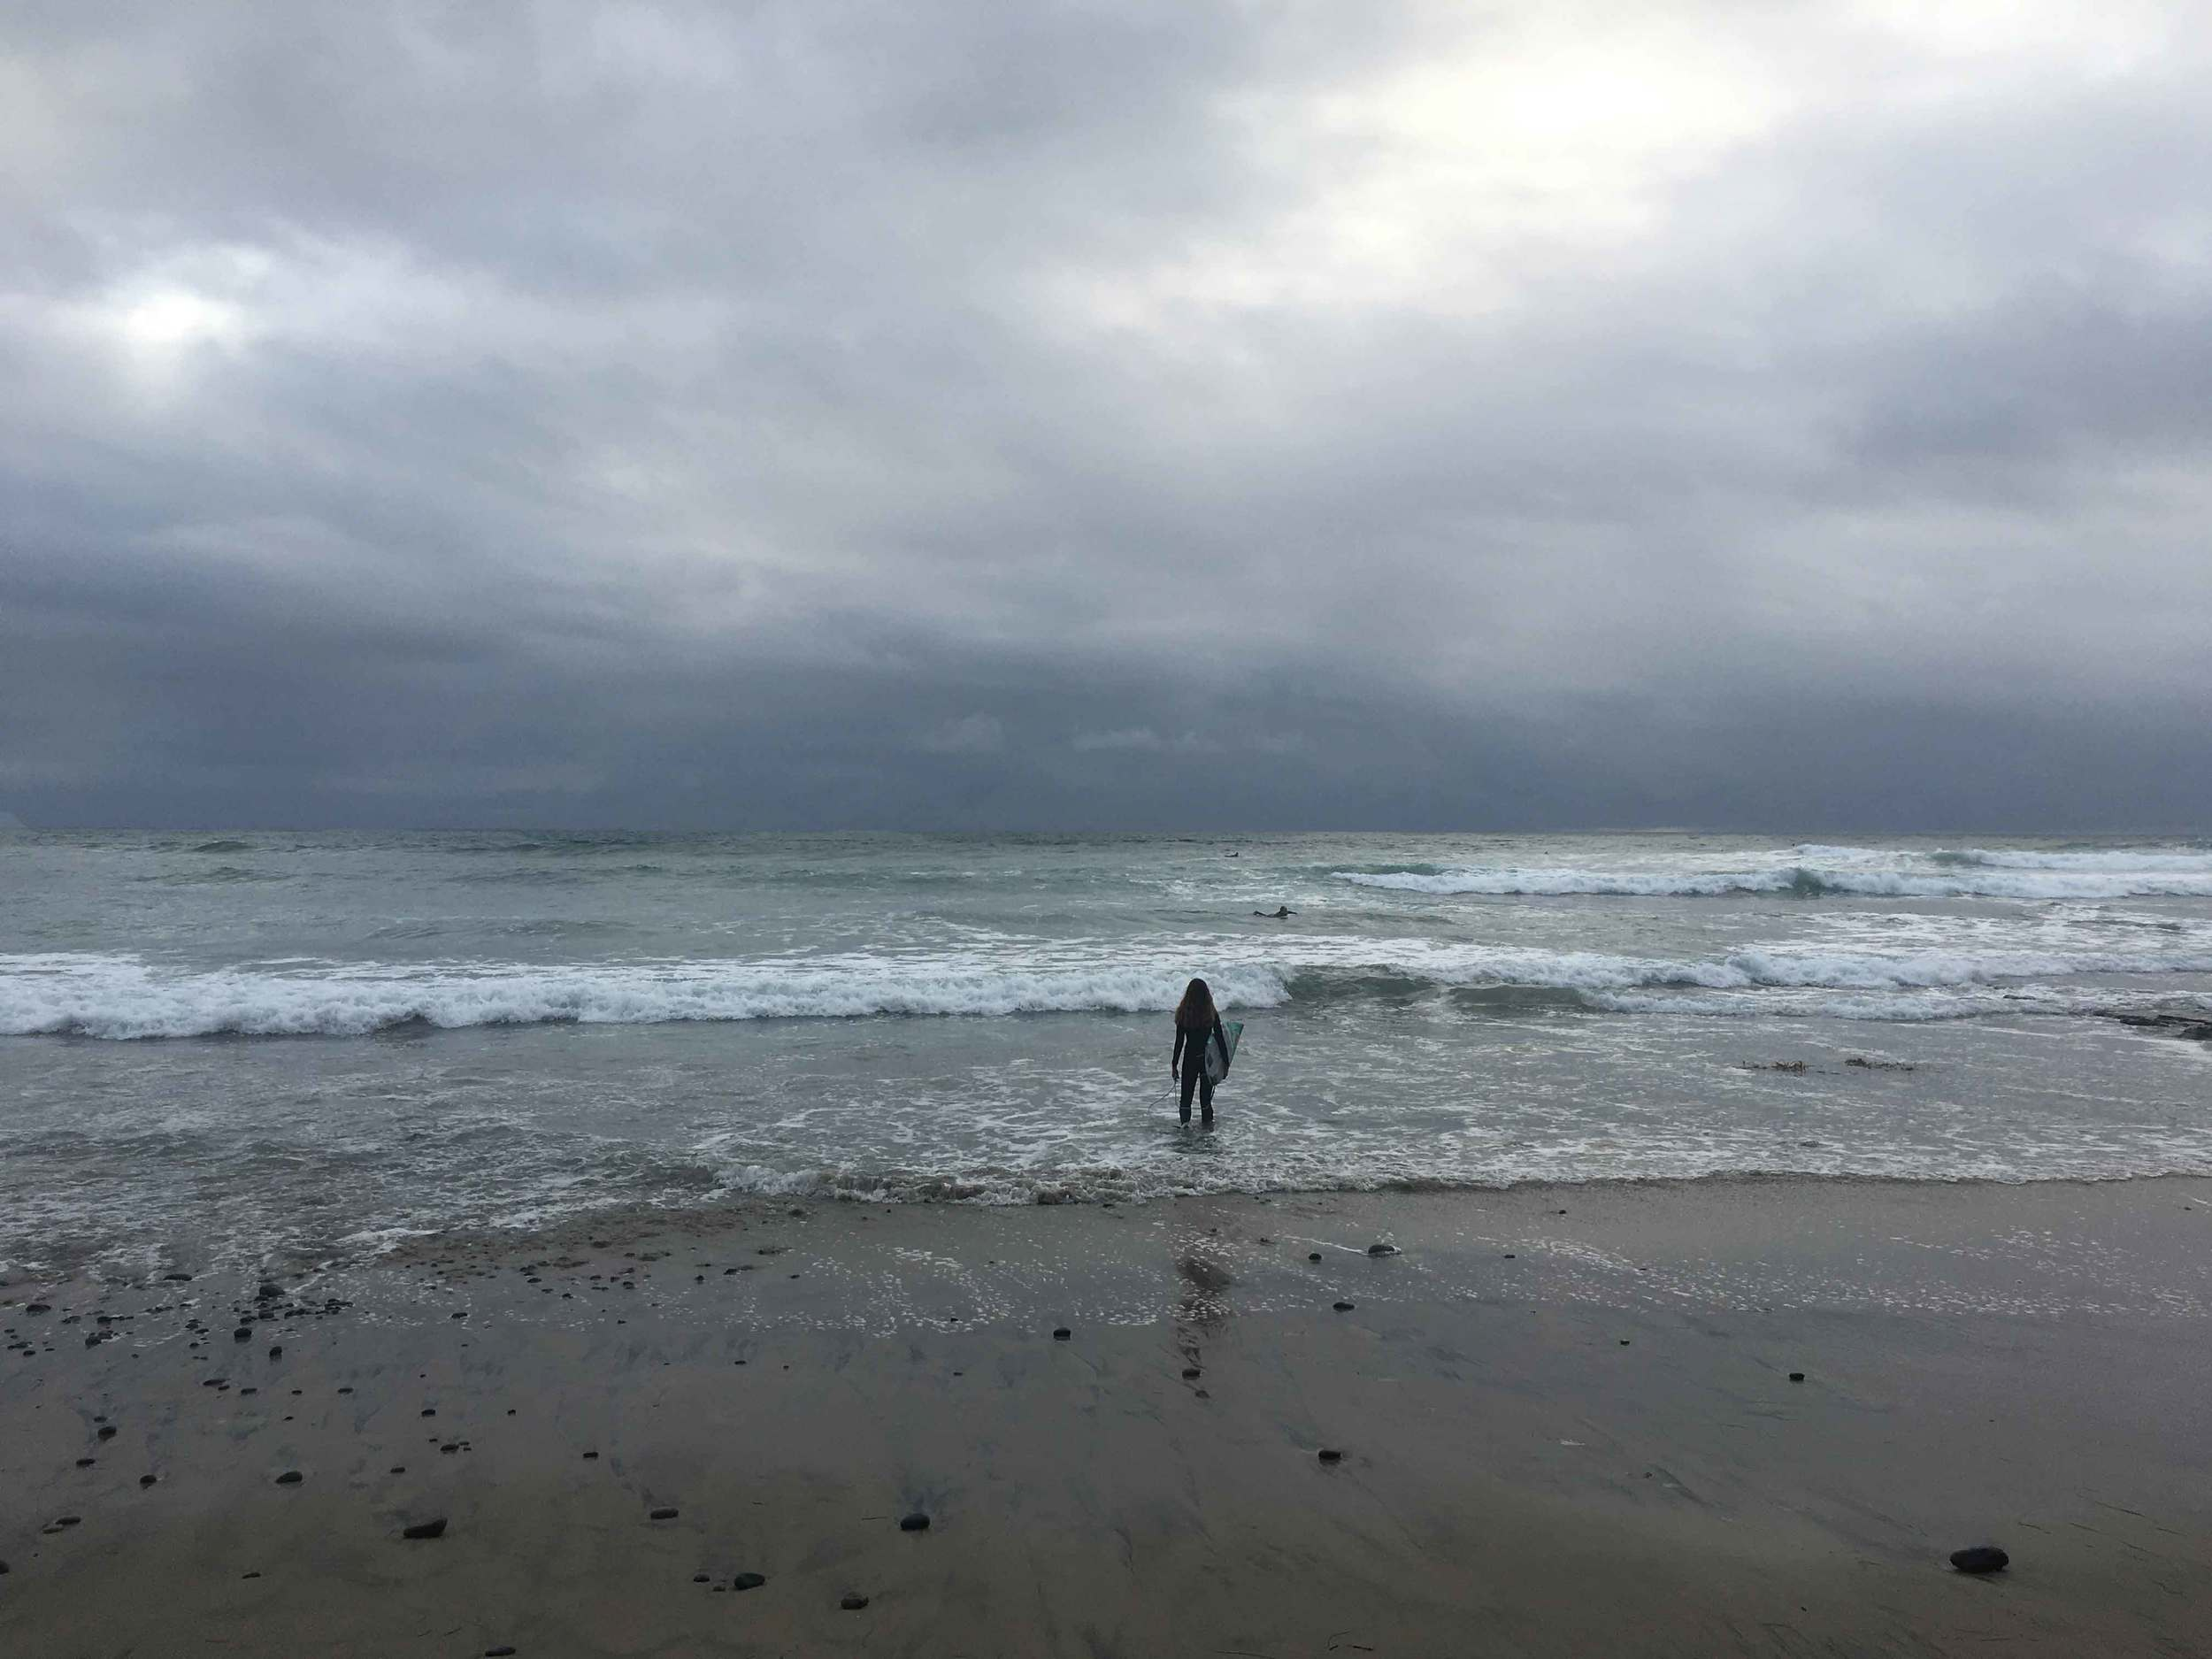 Surfer standing in the ocean, surfer with surfboard, stormy day at the ocean, Swamis beach, Encinitas, California. Image©sourcingstyle.com